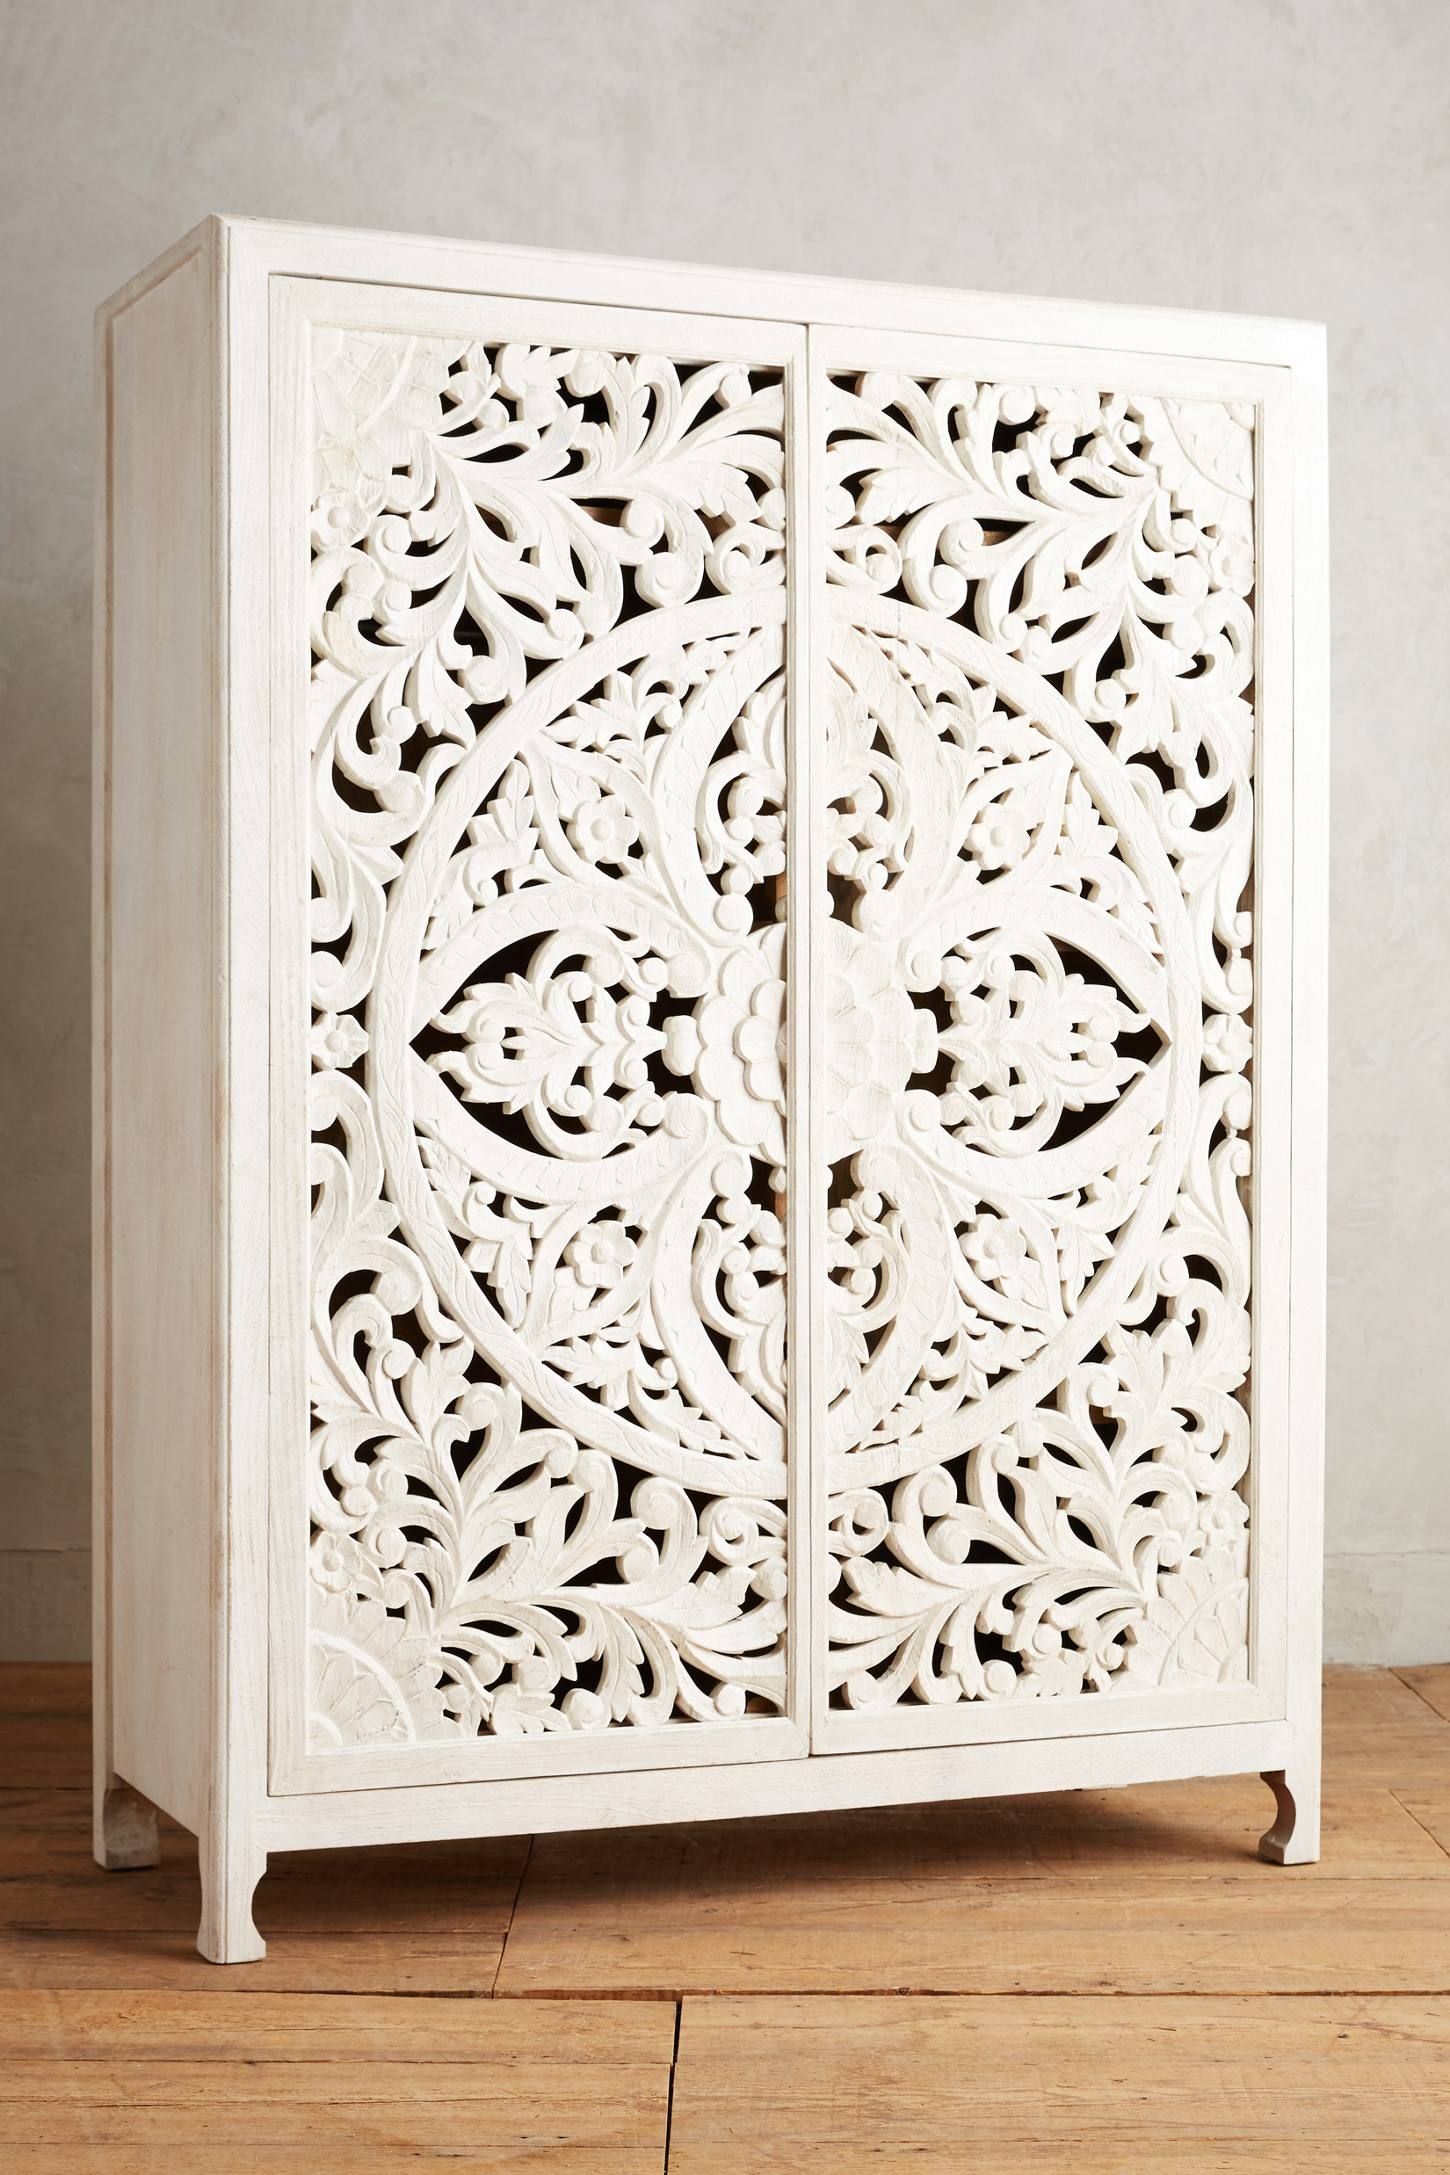 Apartment Anthropologie Armoire - f3f6d44bdfb9061364235db6f1232878_Most Inspiring Apartment Anthropologie Armoire - f3f6d44bdfb9061364235db6f1232878  2018_527860.jpg